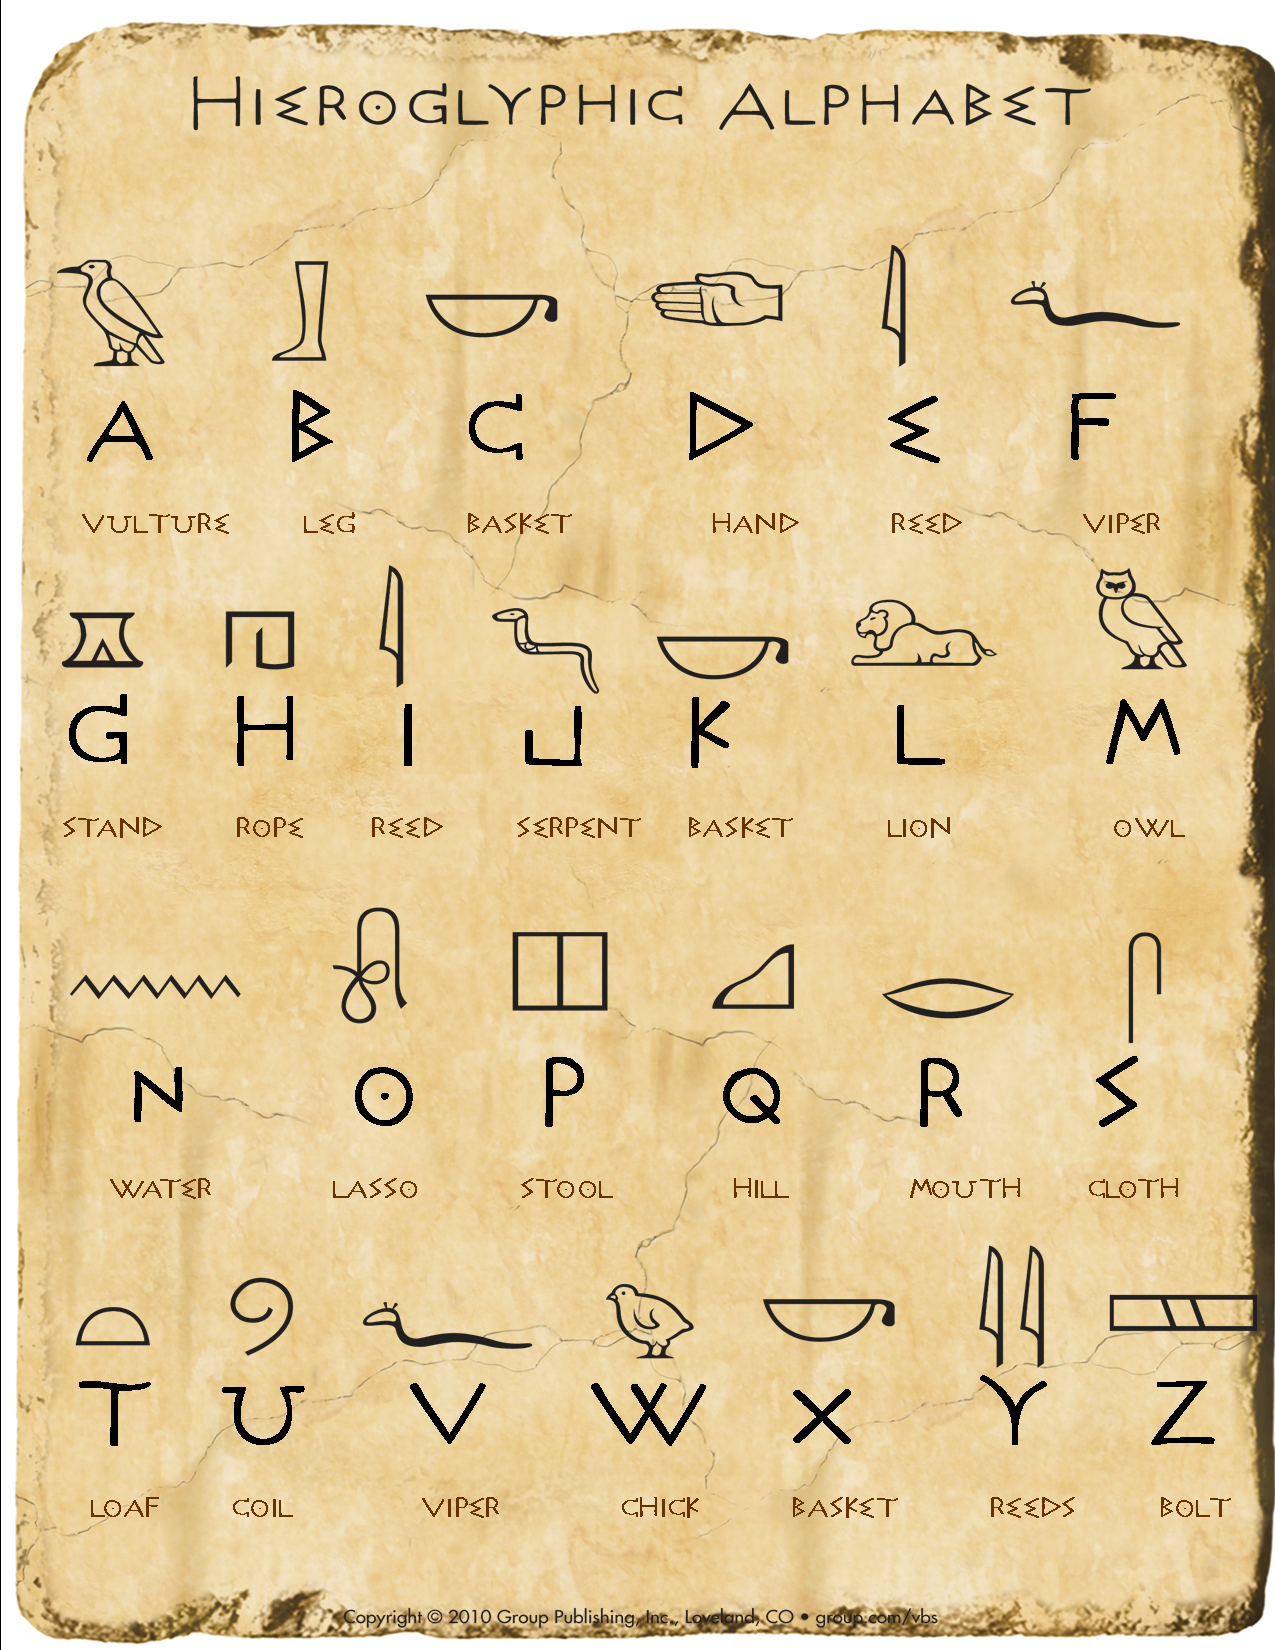 A Modified Version Of The Hieroglyphic Chart From Group